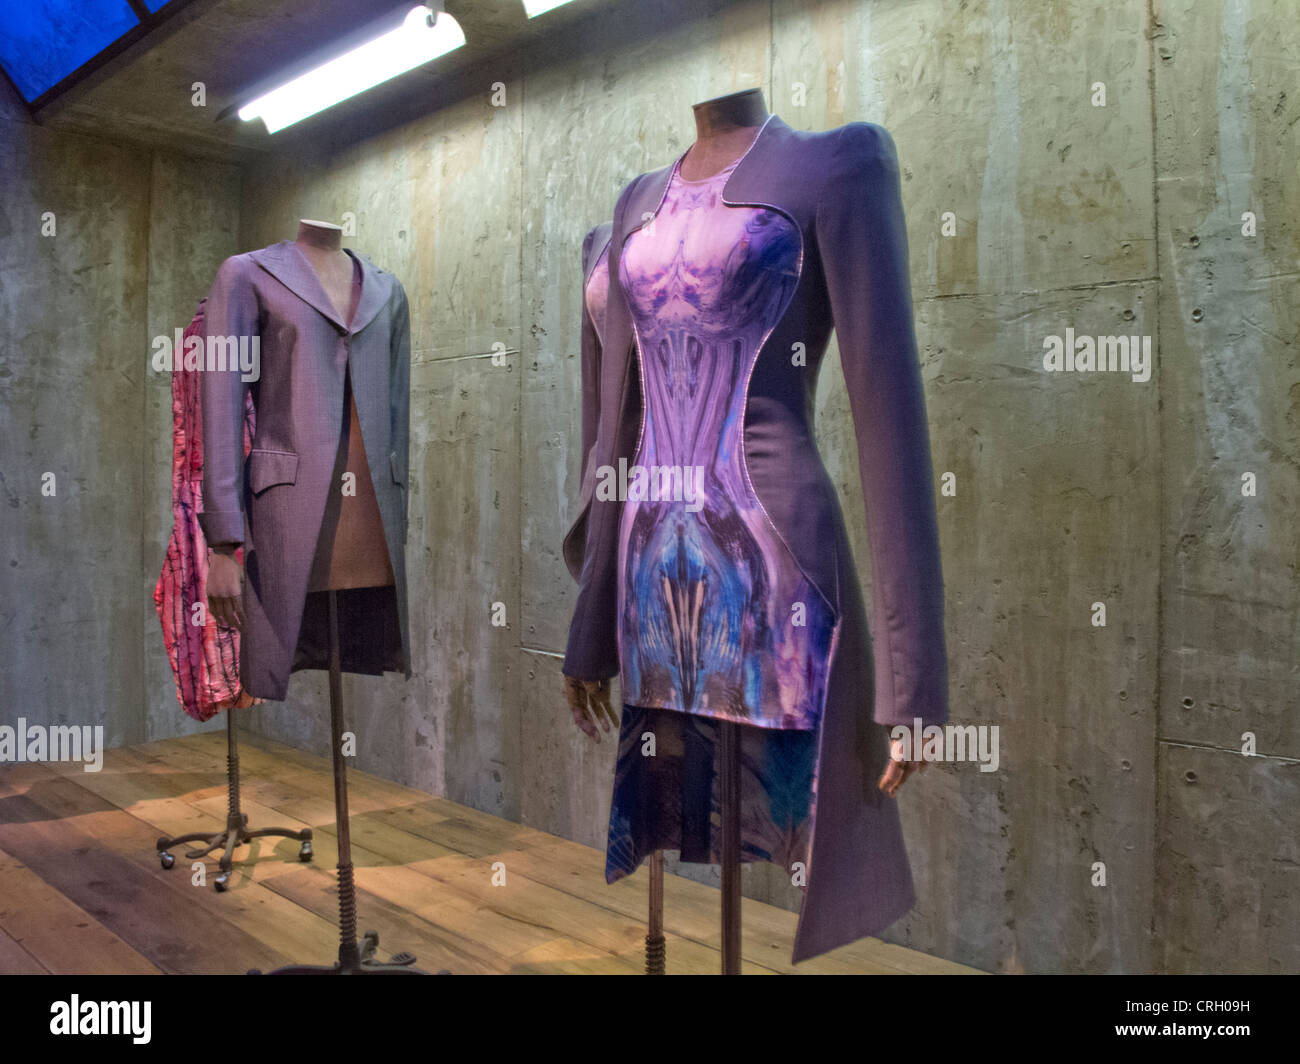 Beauty Show Stock Photos Images Alamy Petite Cupcakes Aumy Outer Alexander Mcqueen Savage At The Metropolitan Museum Of Art Image